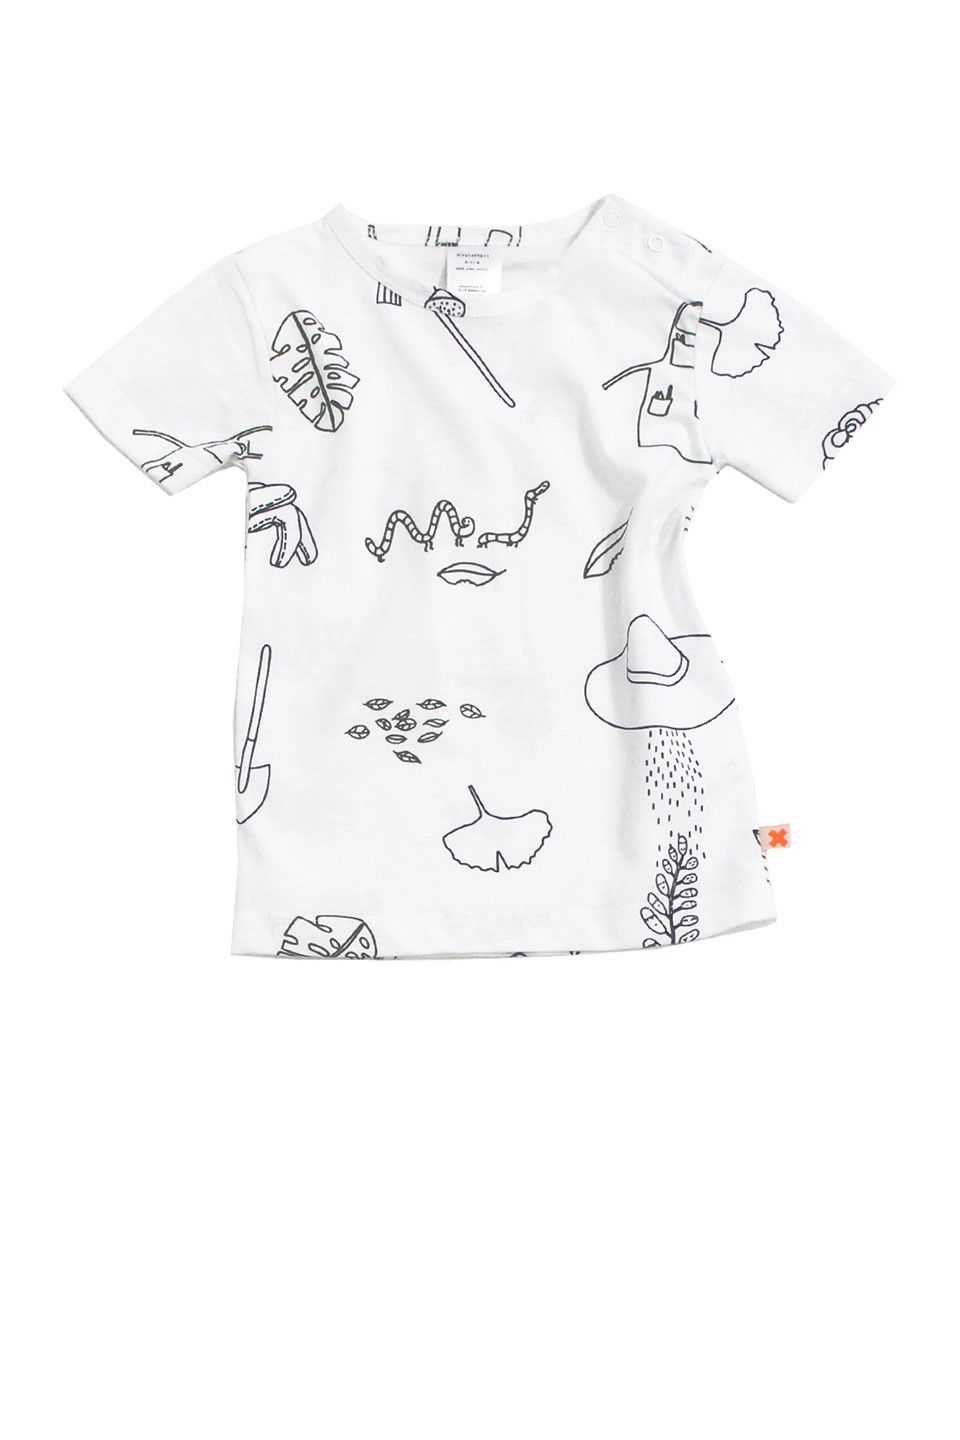 2e8cd5ae8bc This unisex tee is printed with a variety of whimsical garden graphics